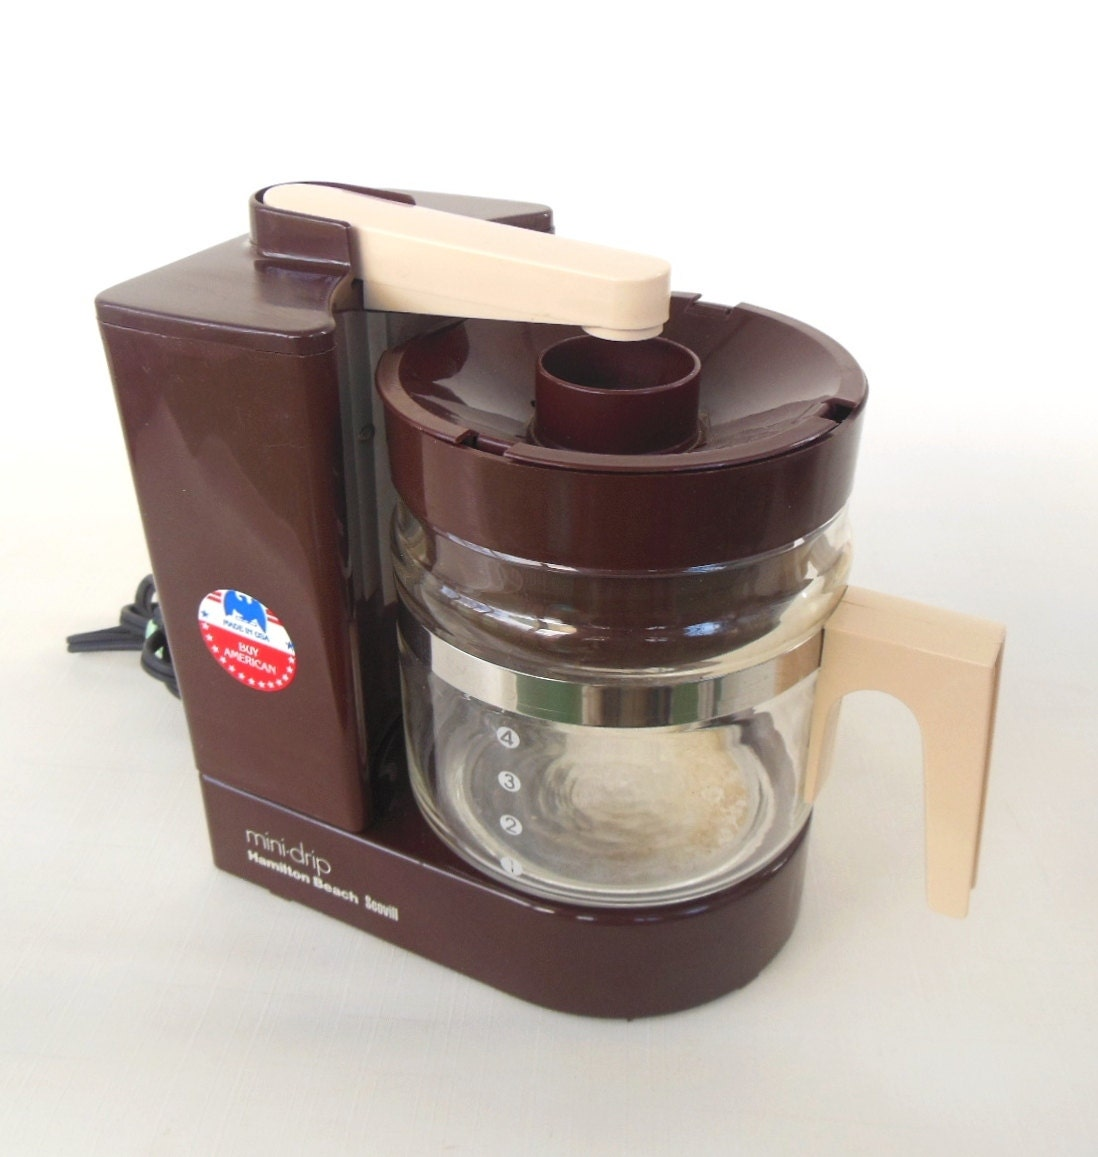 Mini Drip Coffee Maker : 1980s Coffee Maker Brown Hamilton Beach Mini Drip